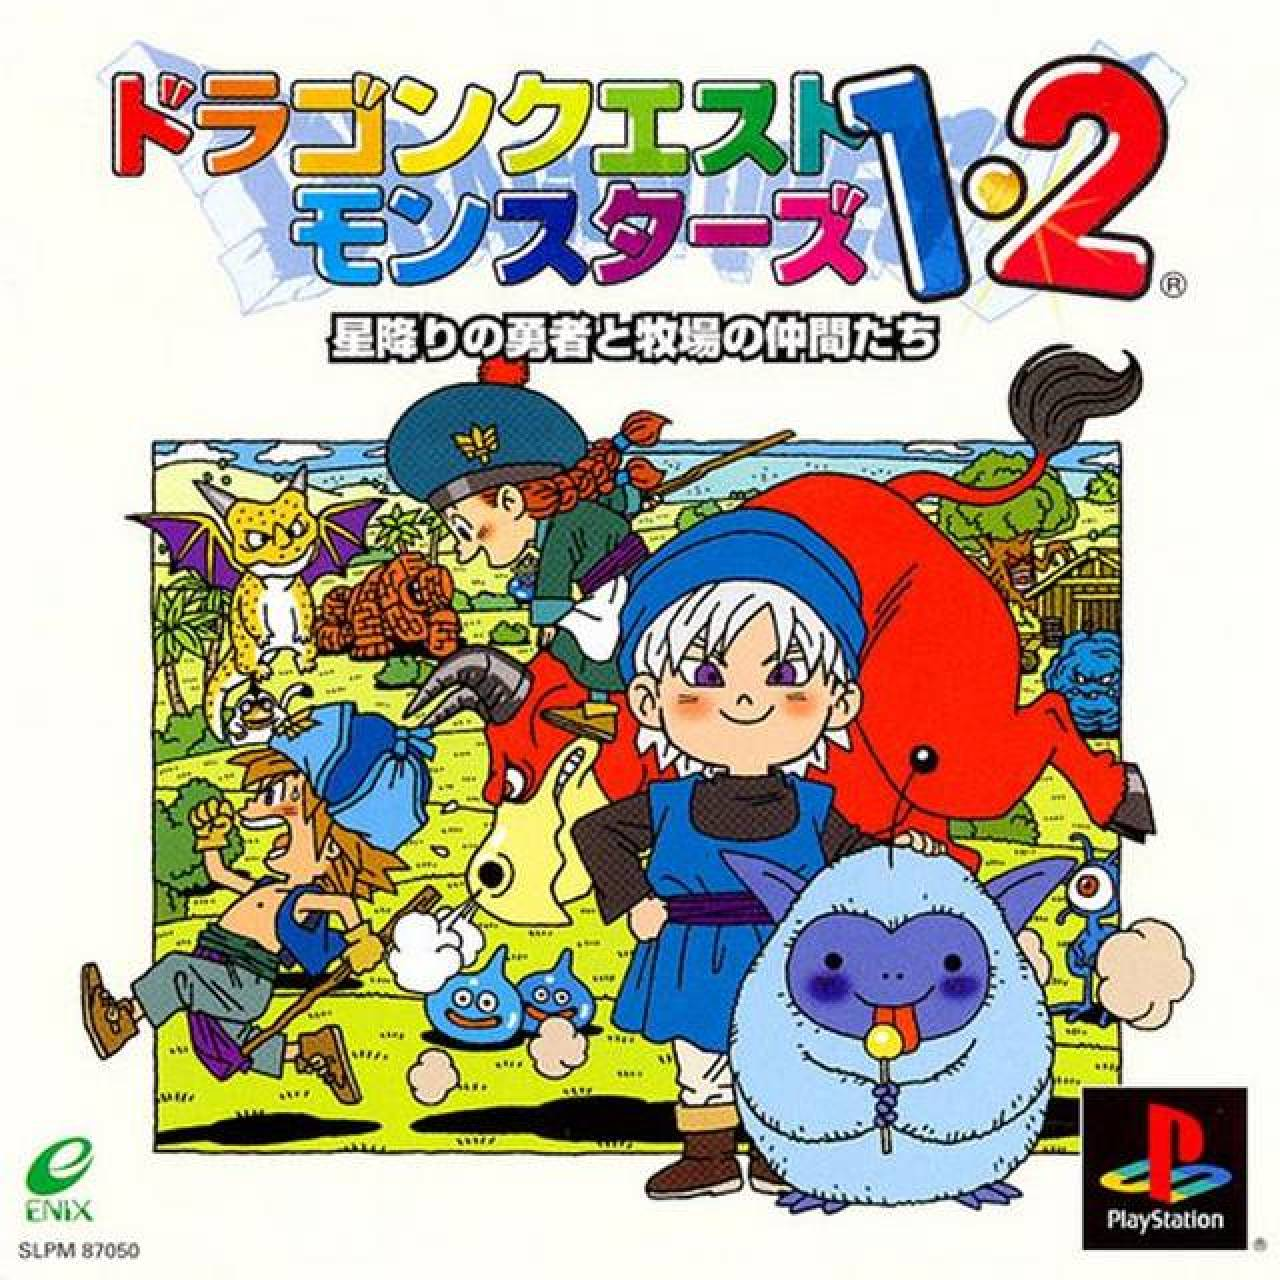 Dragon Quest Monsters 1 & 2